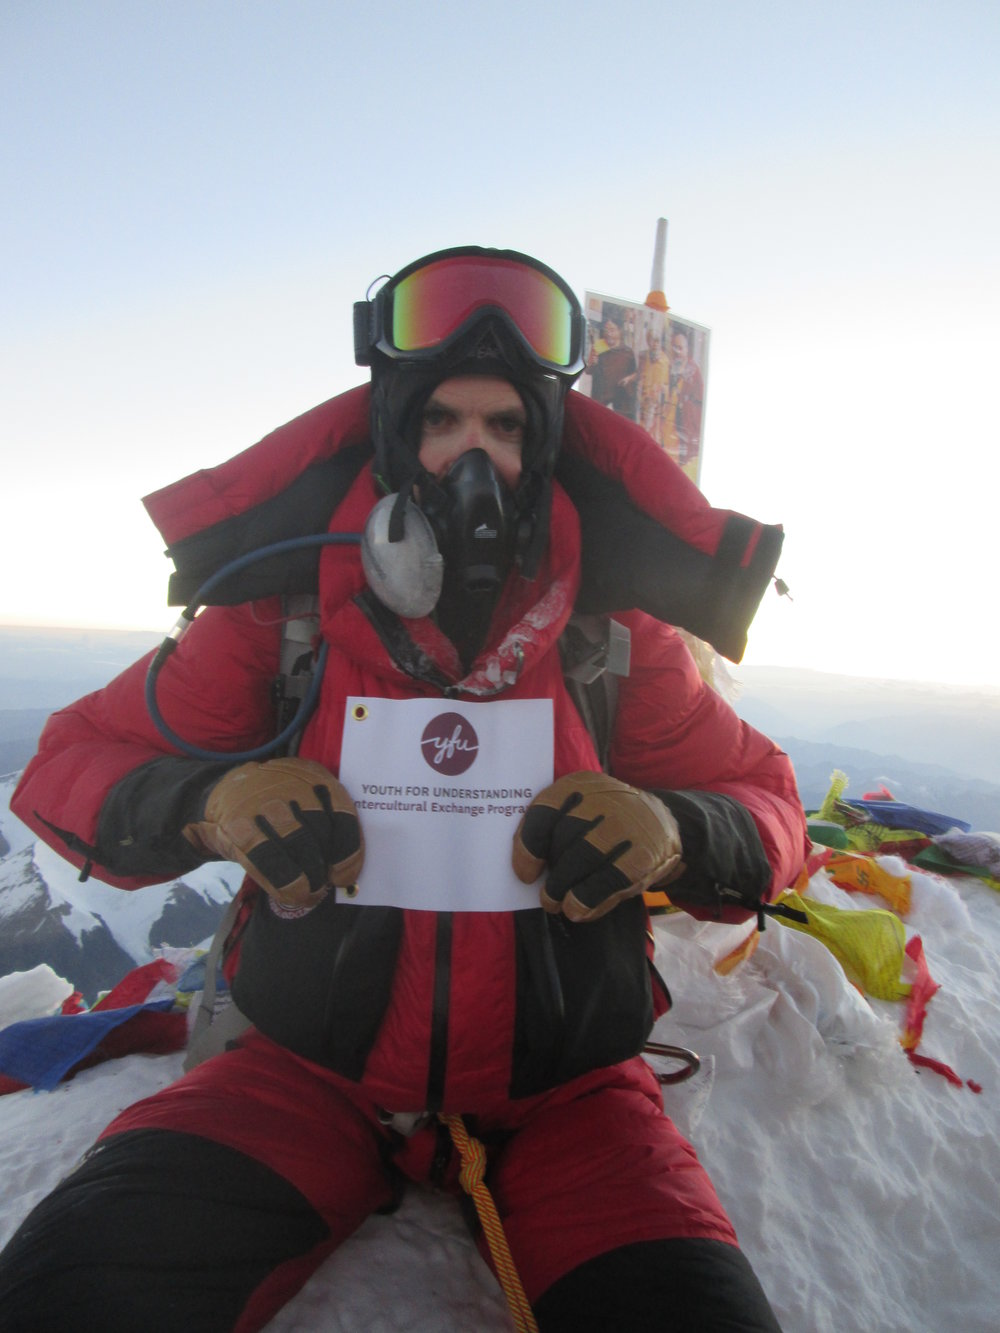 Andrew Towne, 2017 Distinguished Alumni honoree, summits Mt. Everest while raising awareness about intercultural exchange and raising money for the YFU Scholarship Fund.